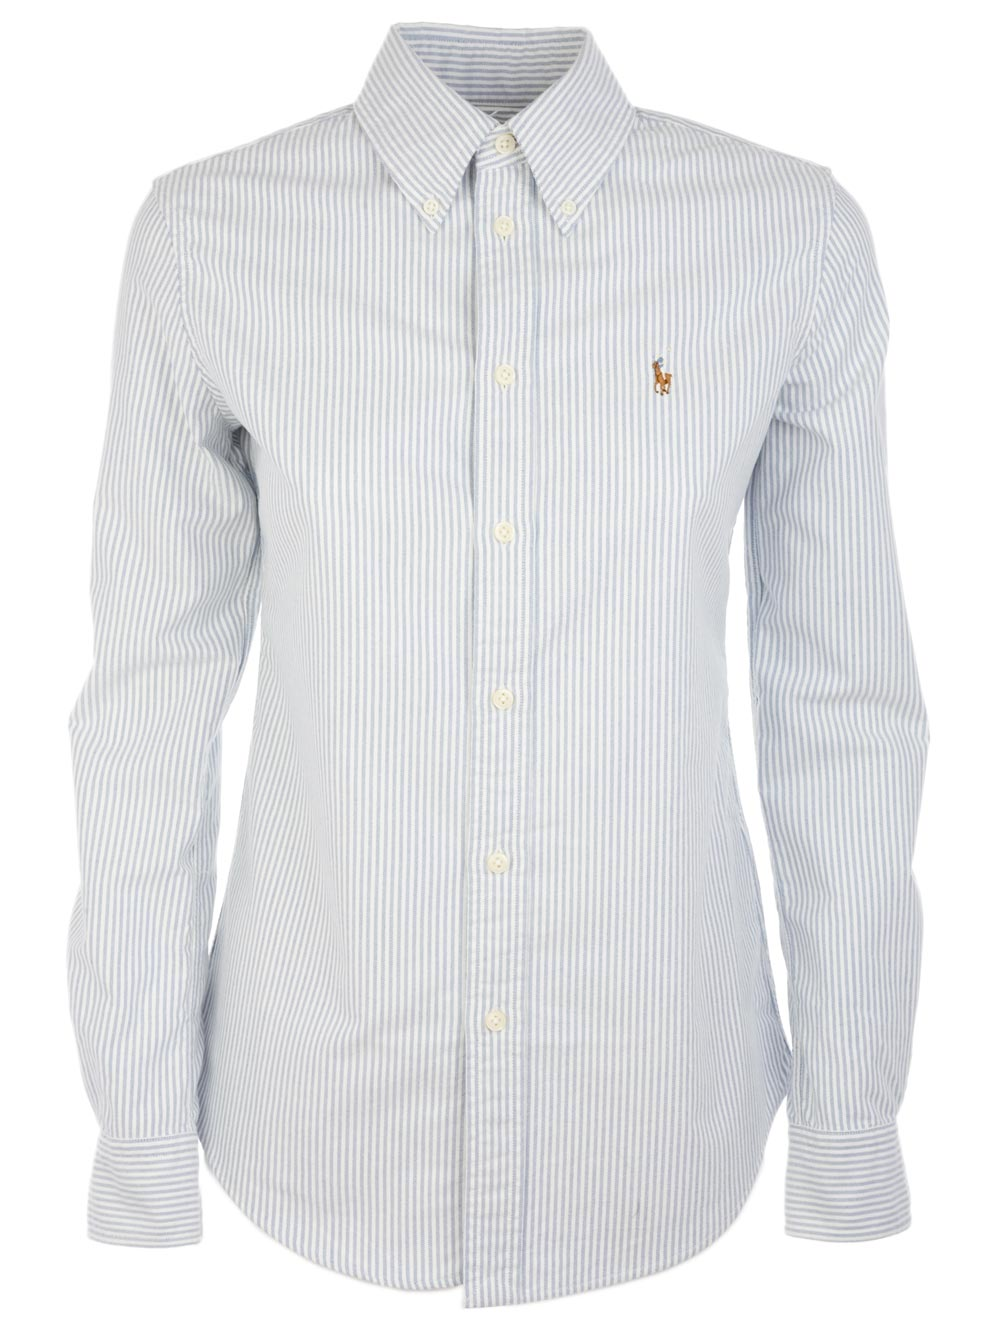 Picture of POLO RALPH LAUREN | Harper Shirt